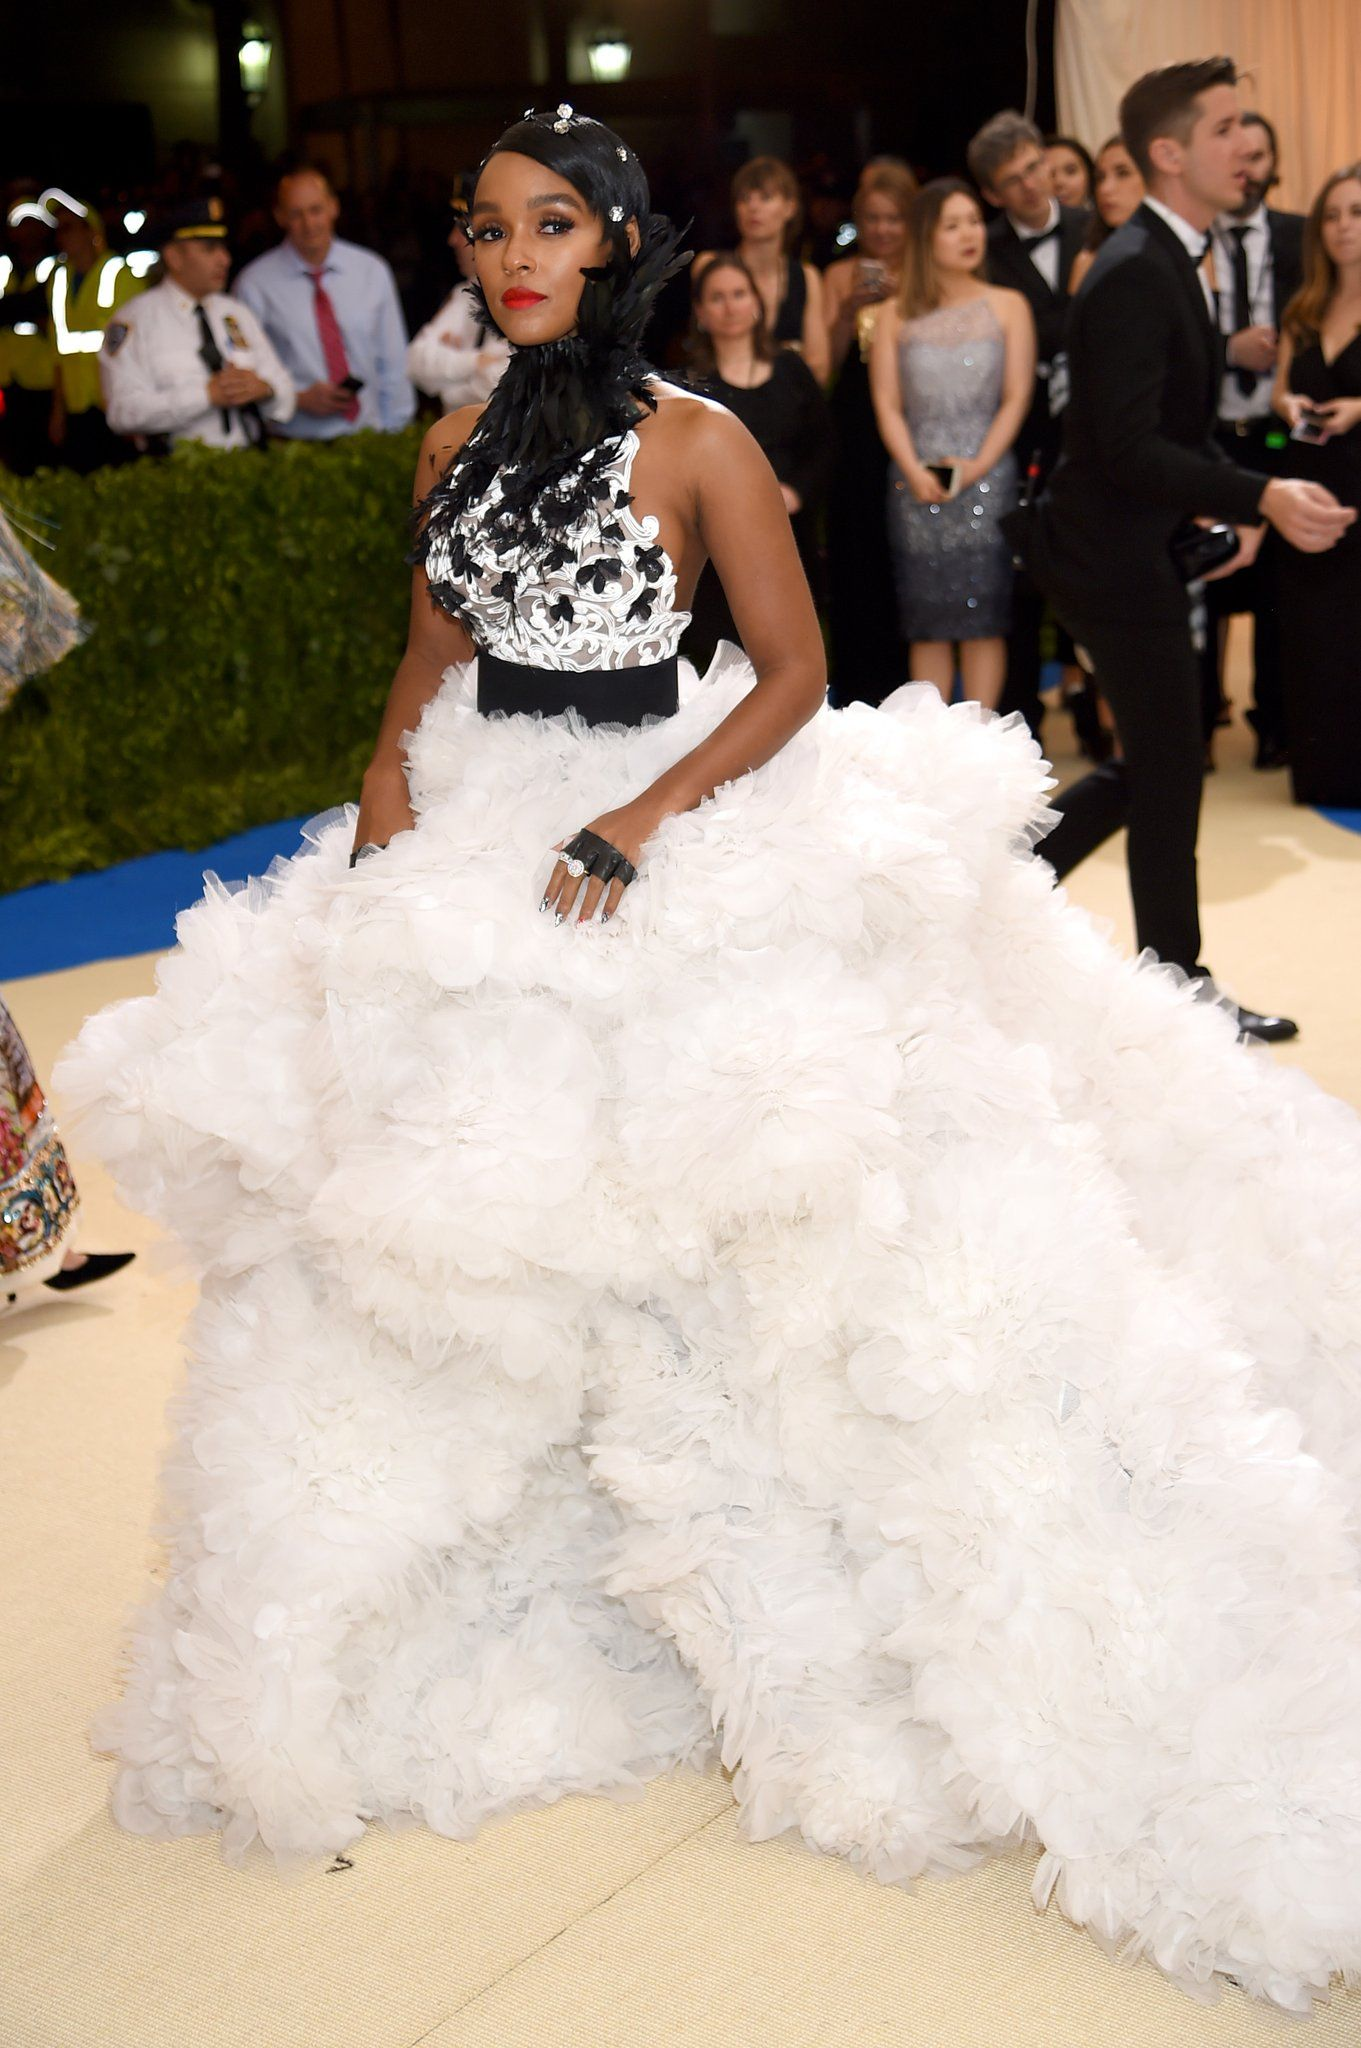 Janelle Monae at the Met Gala. May 2, 2017.